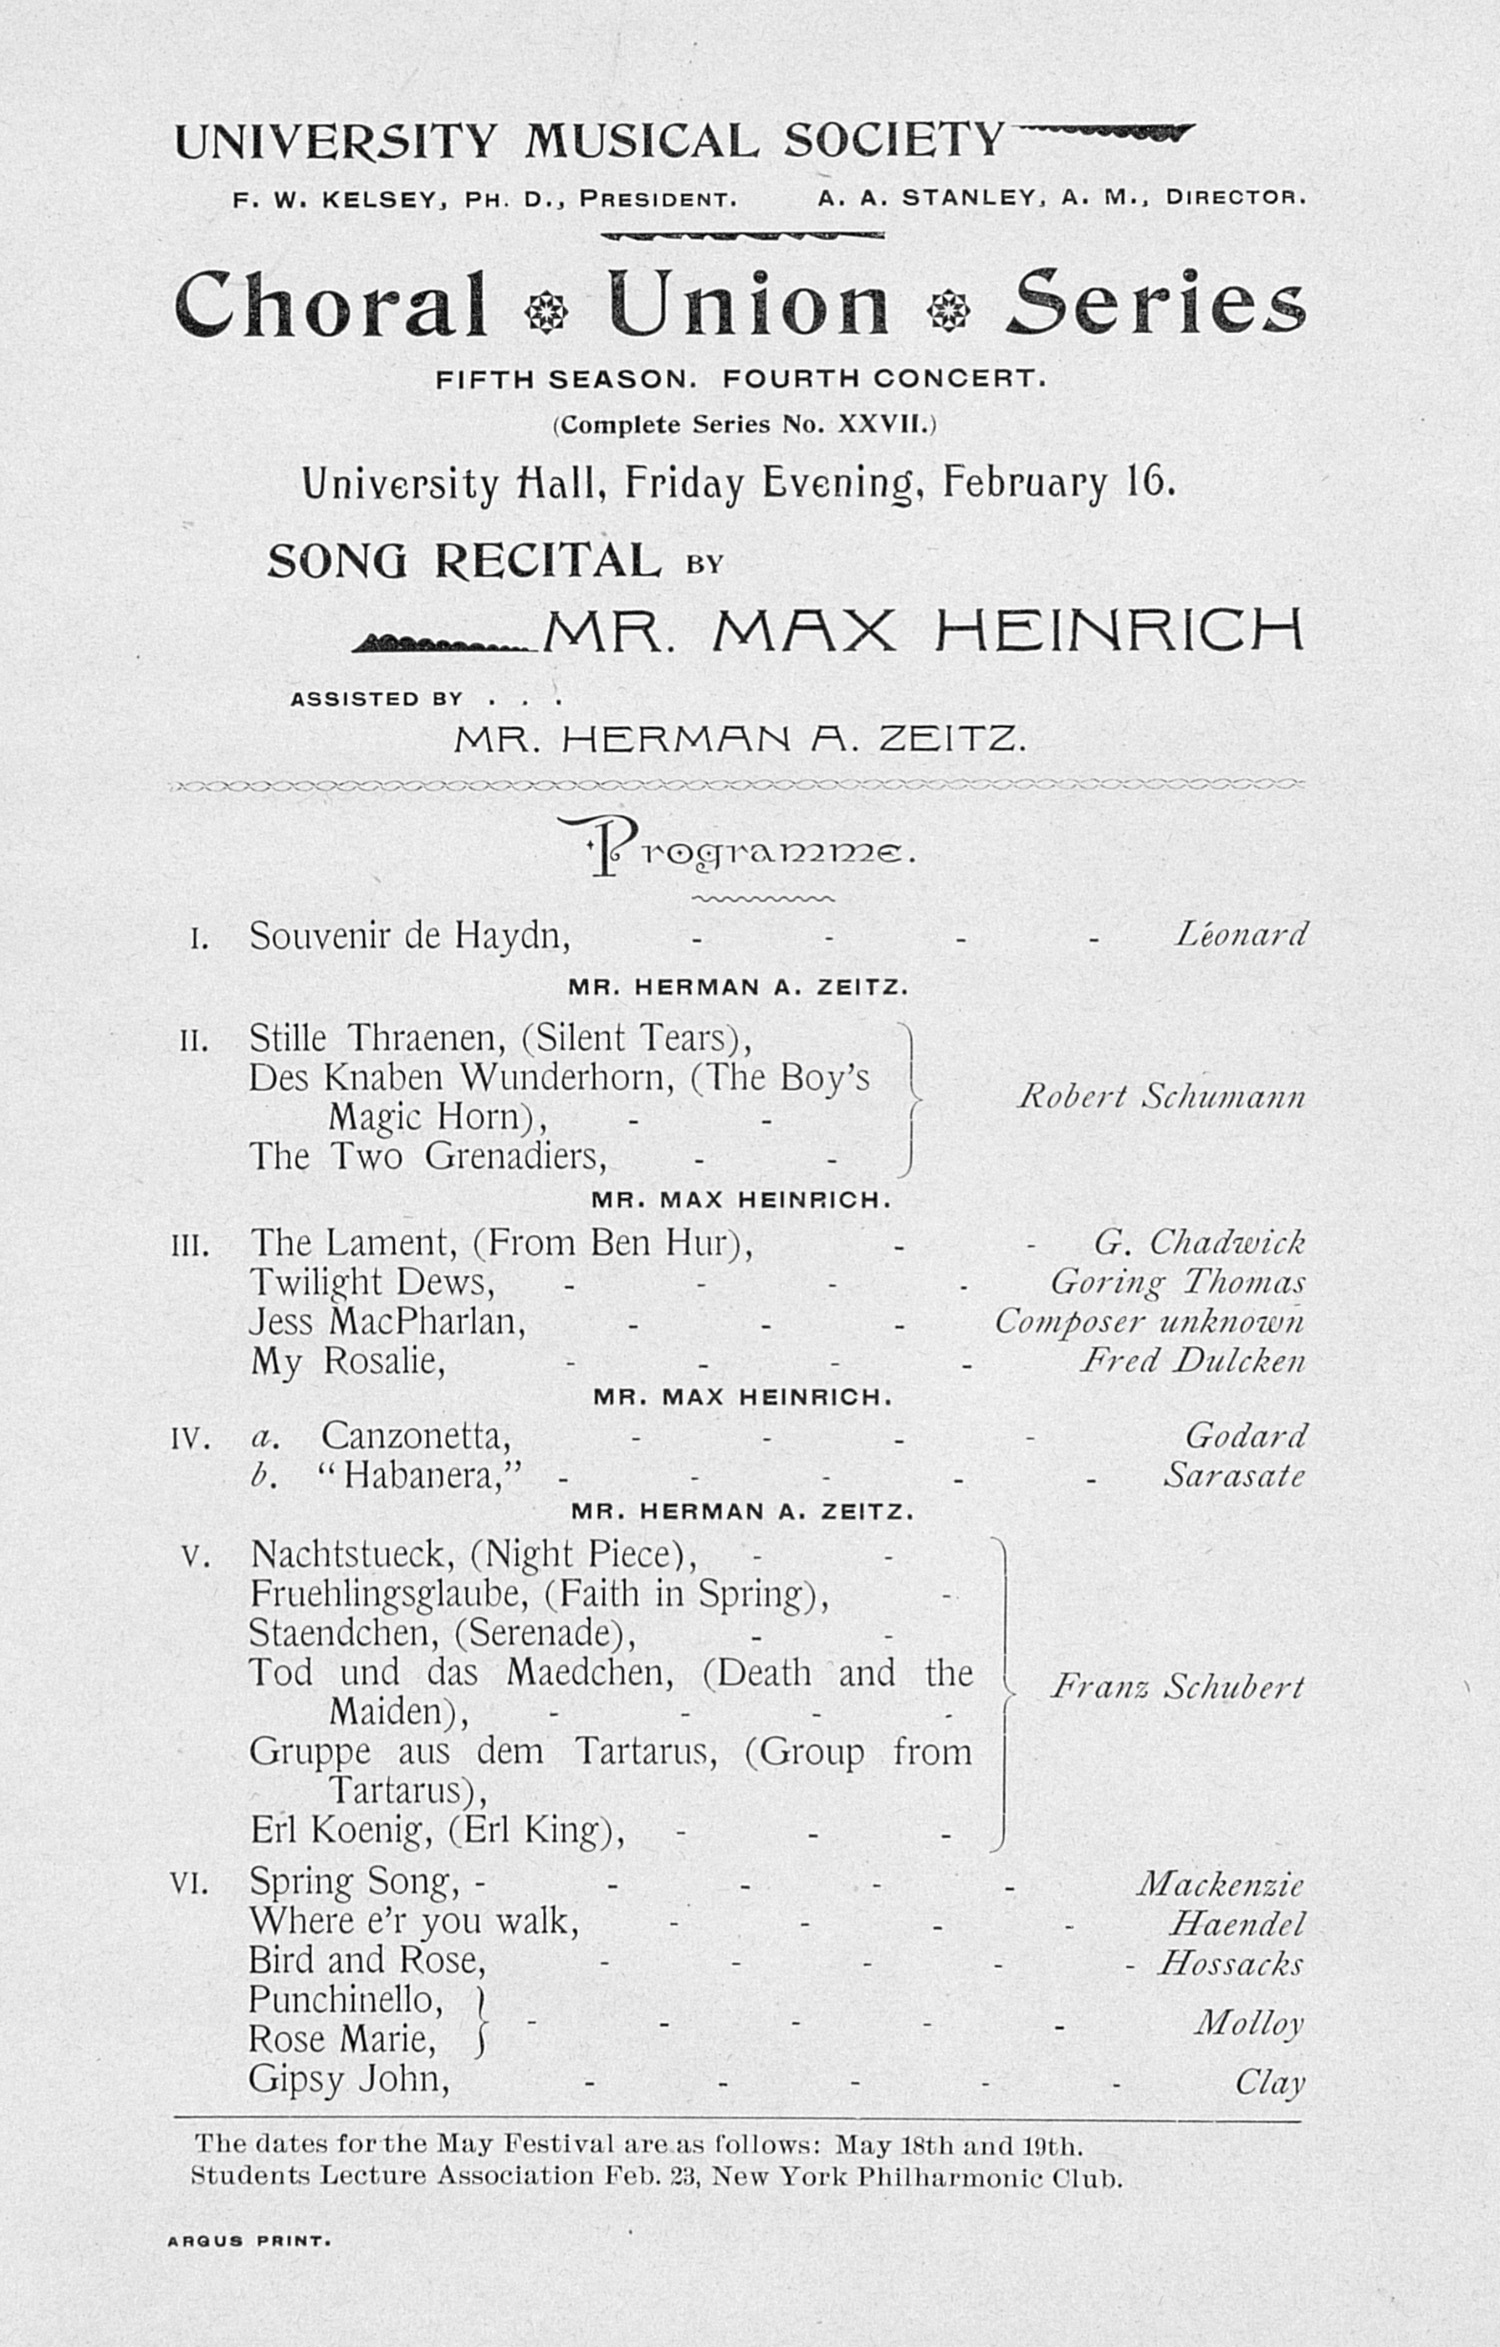 UMS Concert Program, February 16: Choral Union Series -- Mr. Max Heinrich image